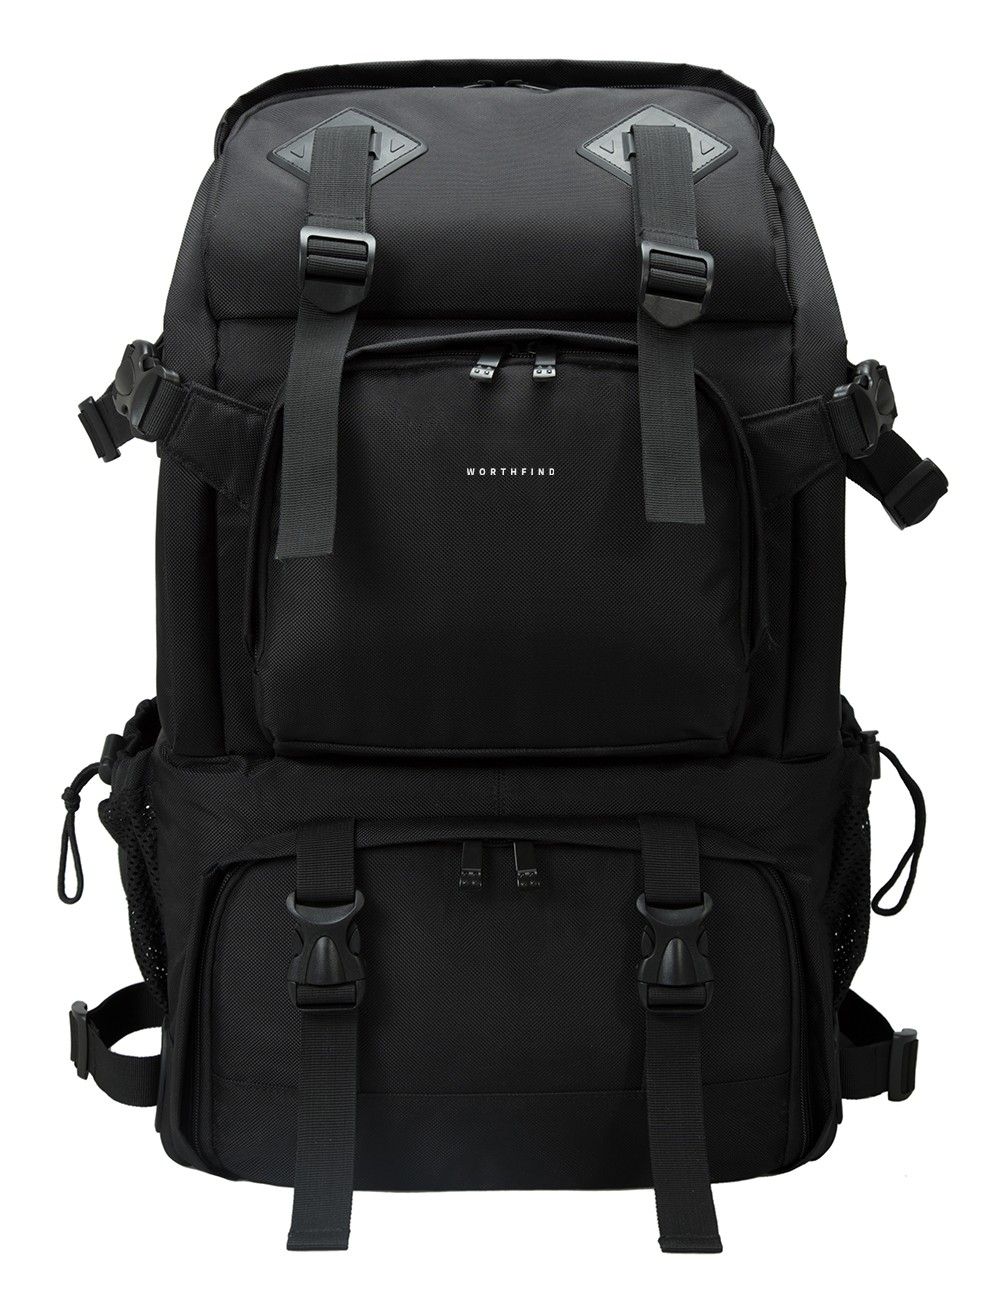 DSLR Backpacks